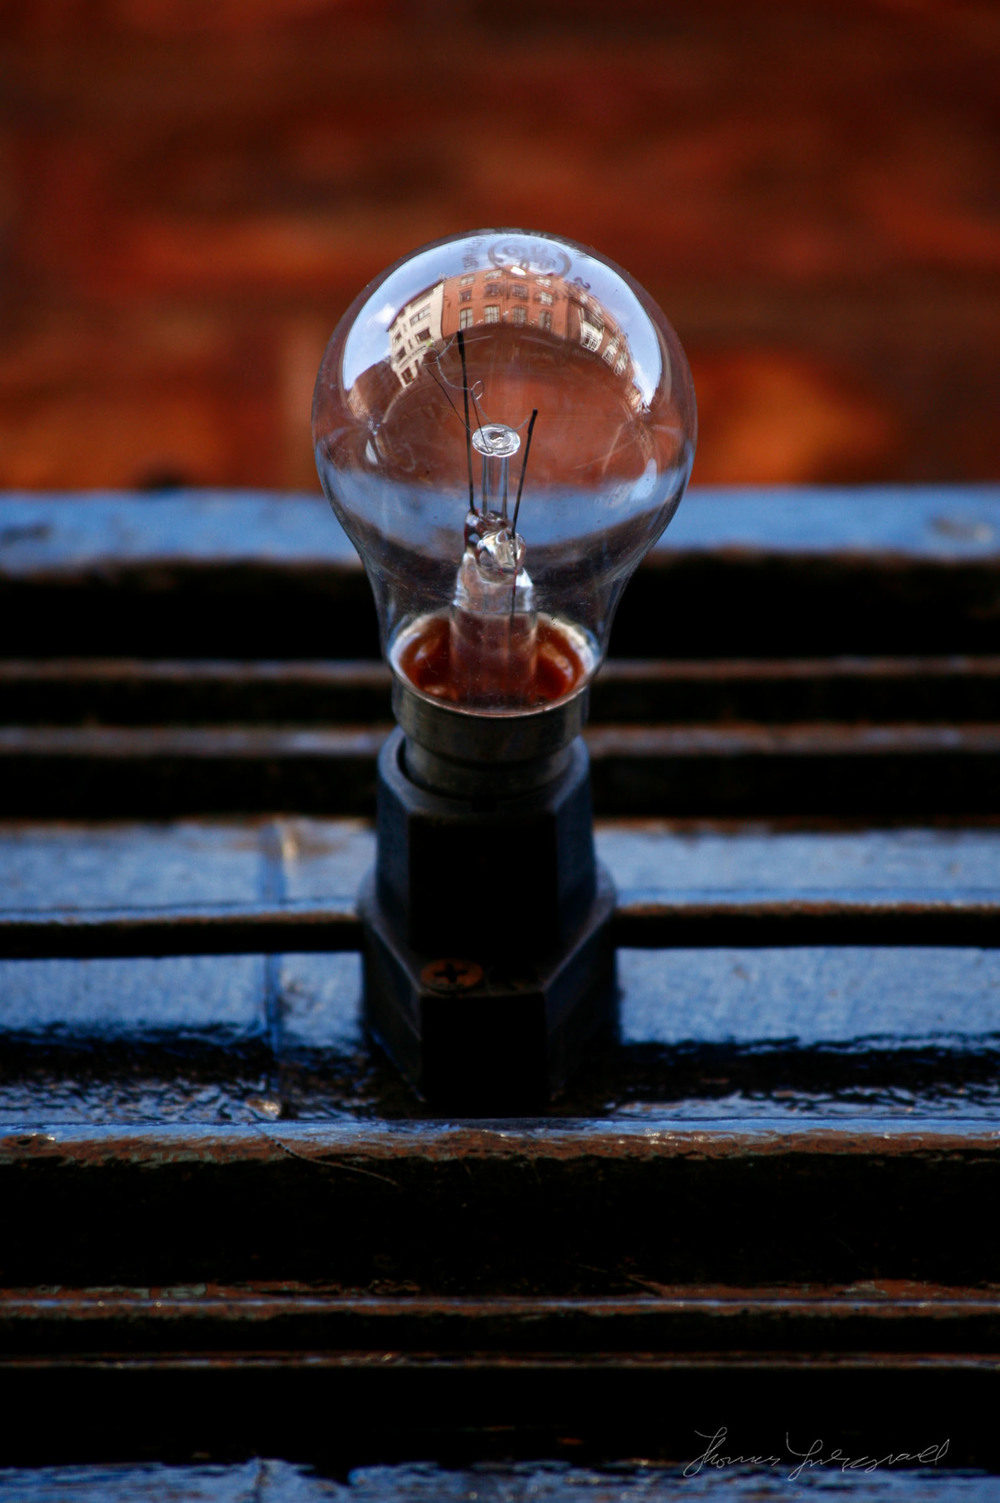 Reflections in Lightbulb